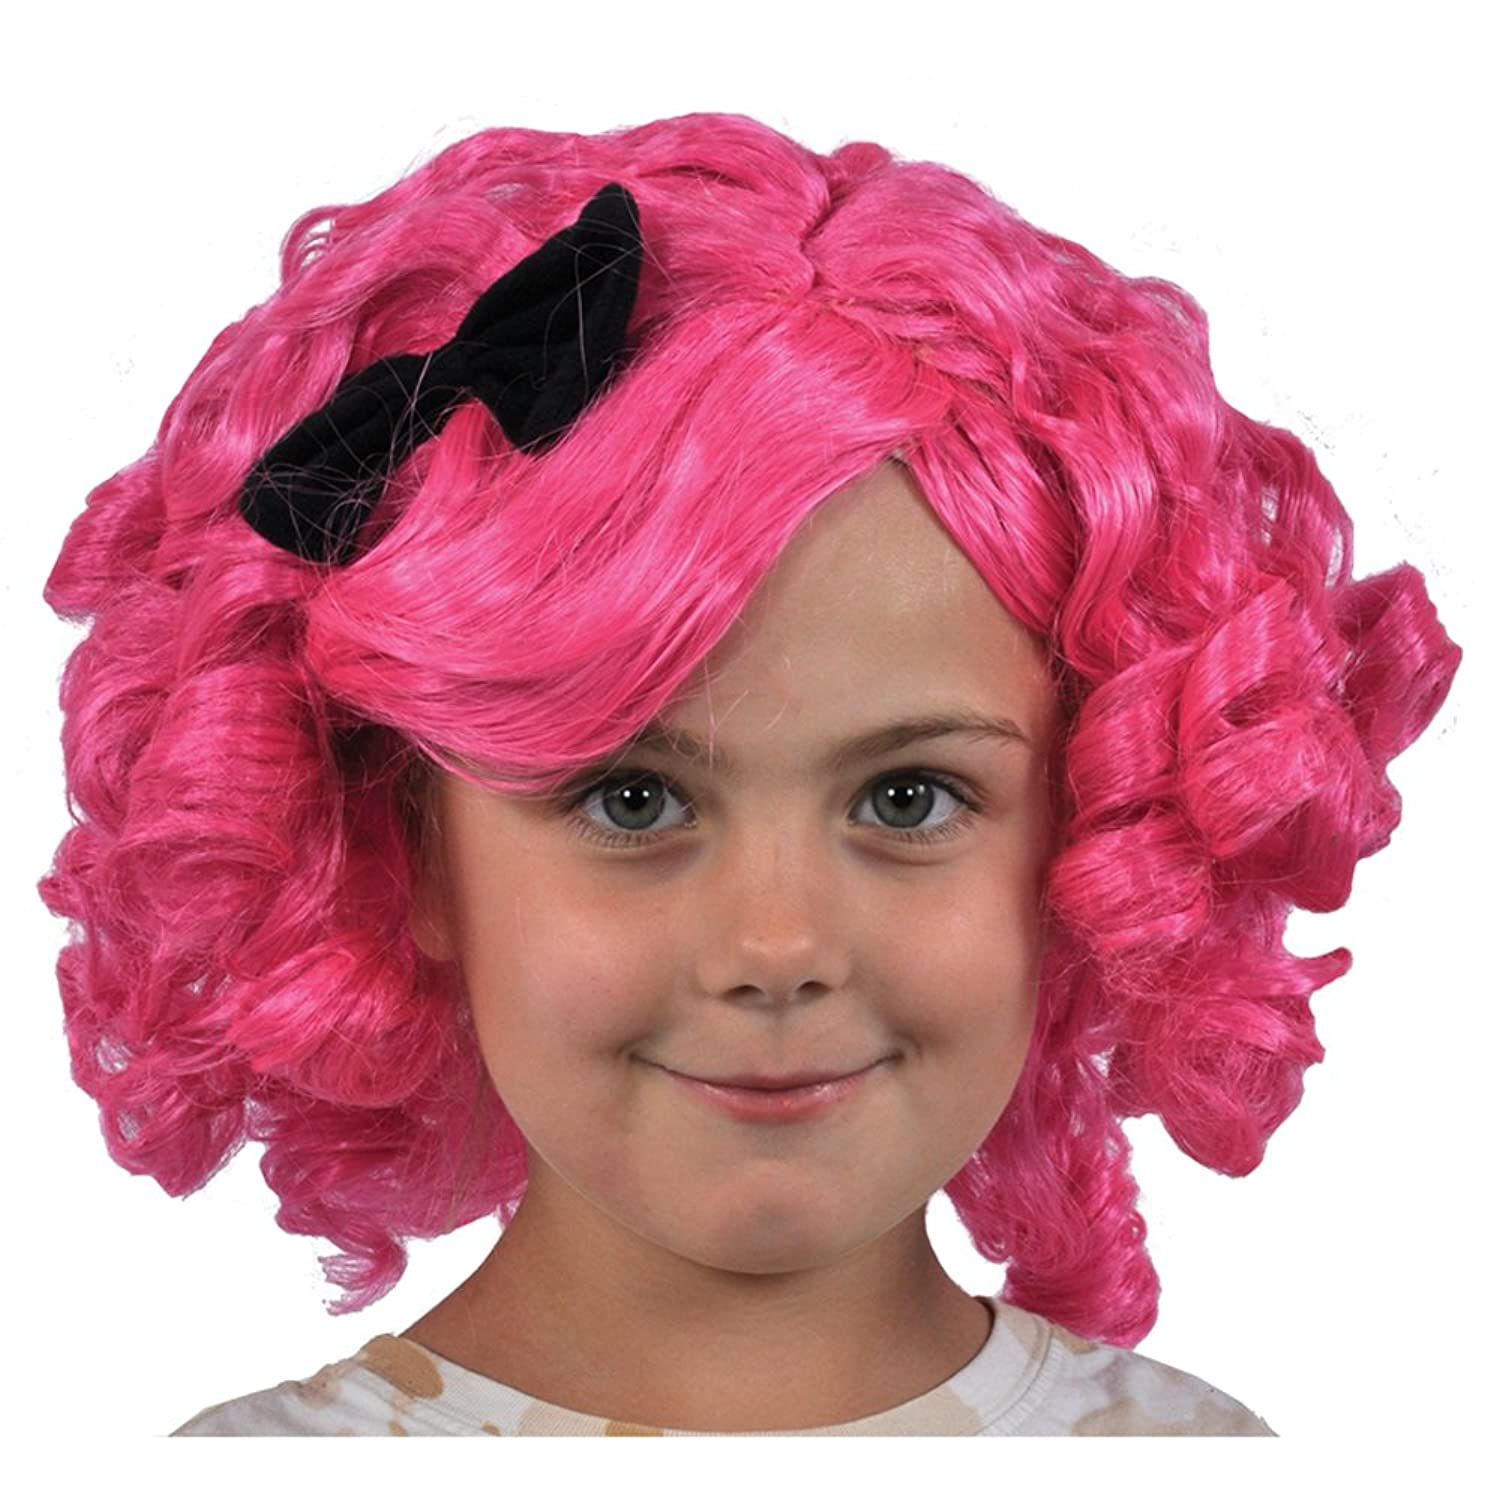 Crumbs Sugar Cookie Wig Lalaloopsy Crumbs Sugar Cookie